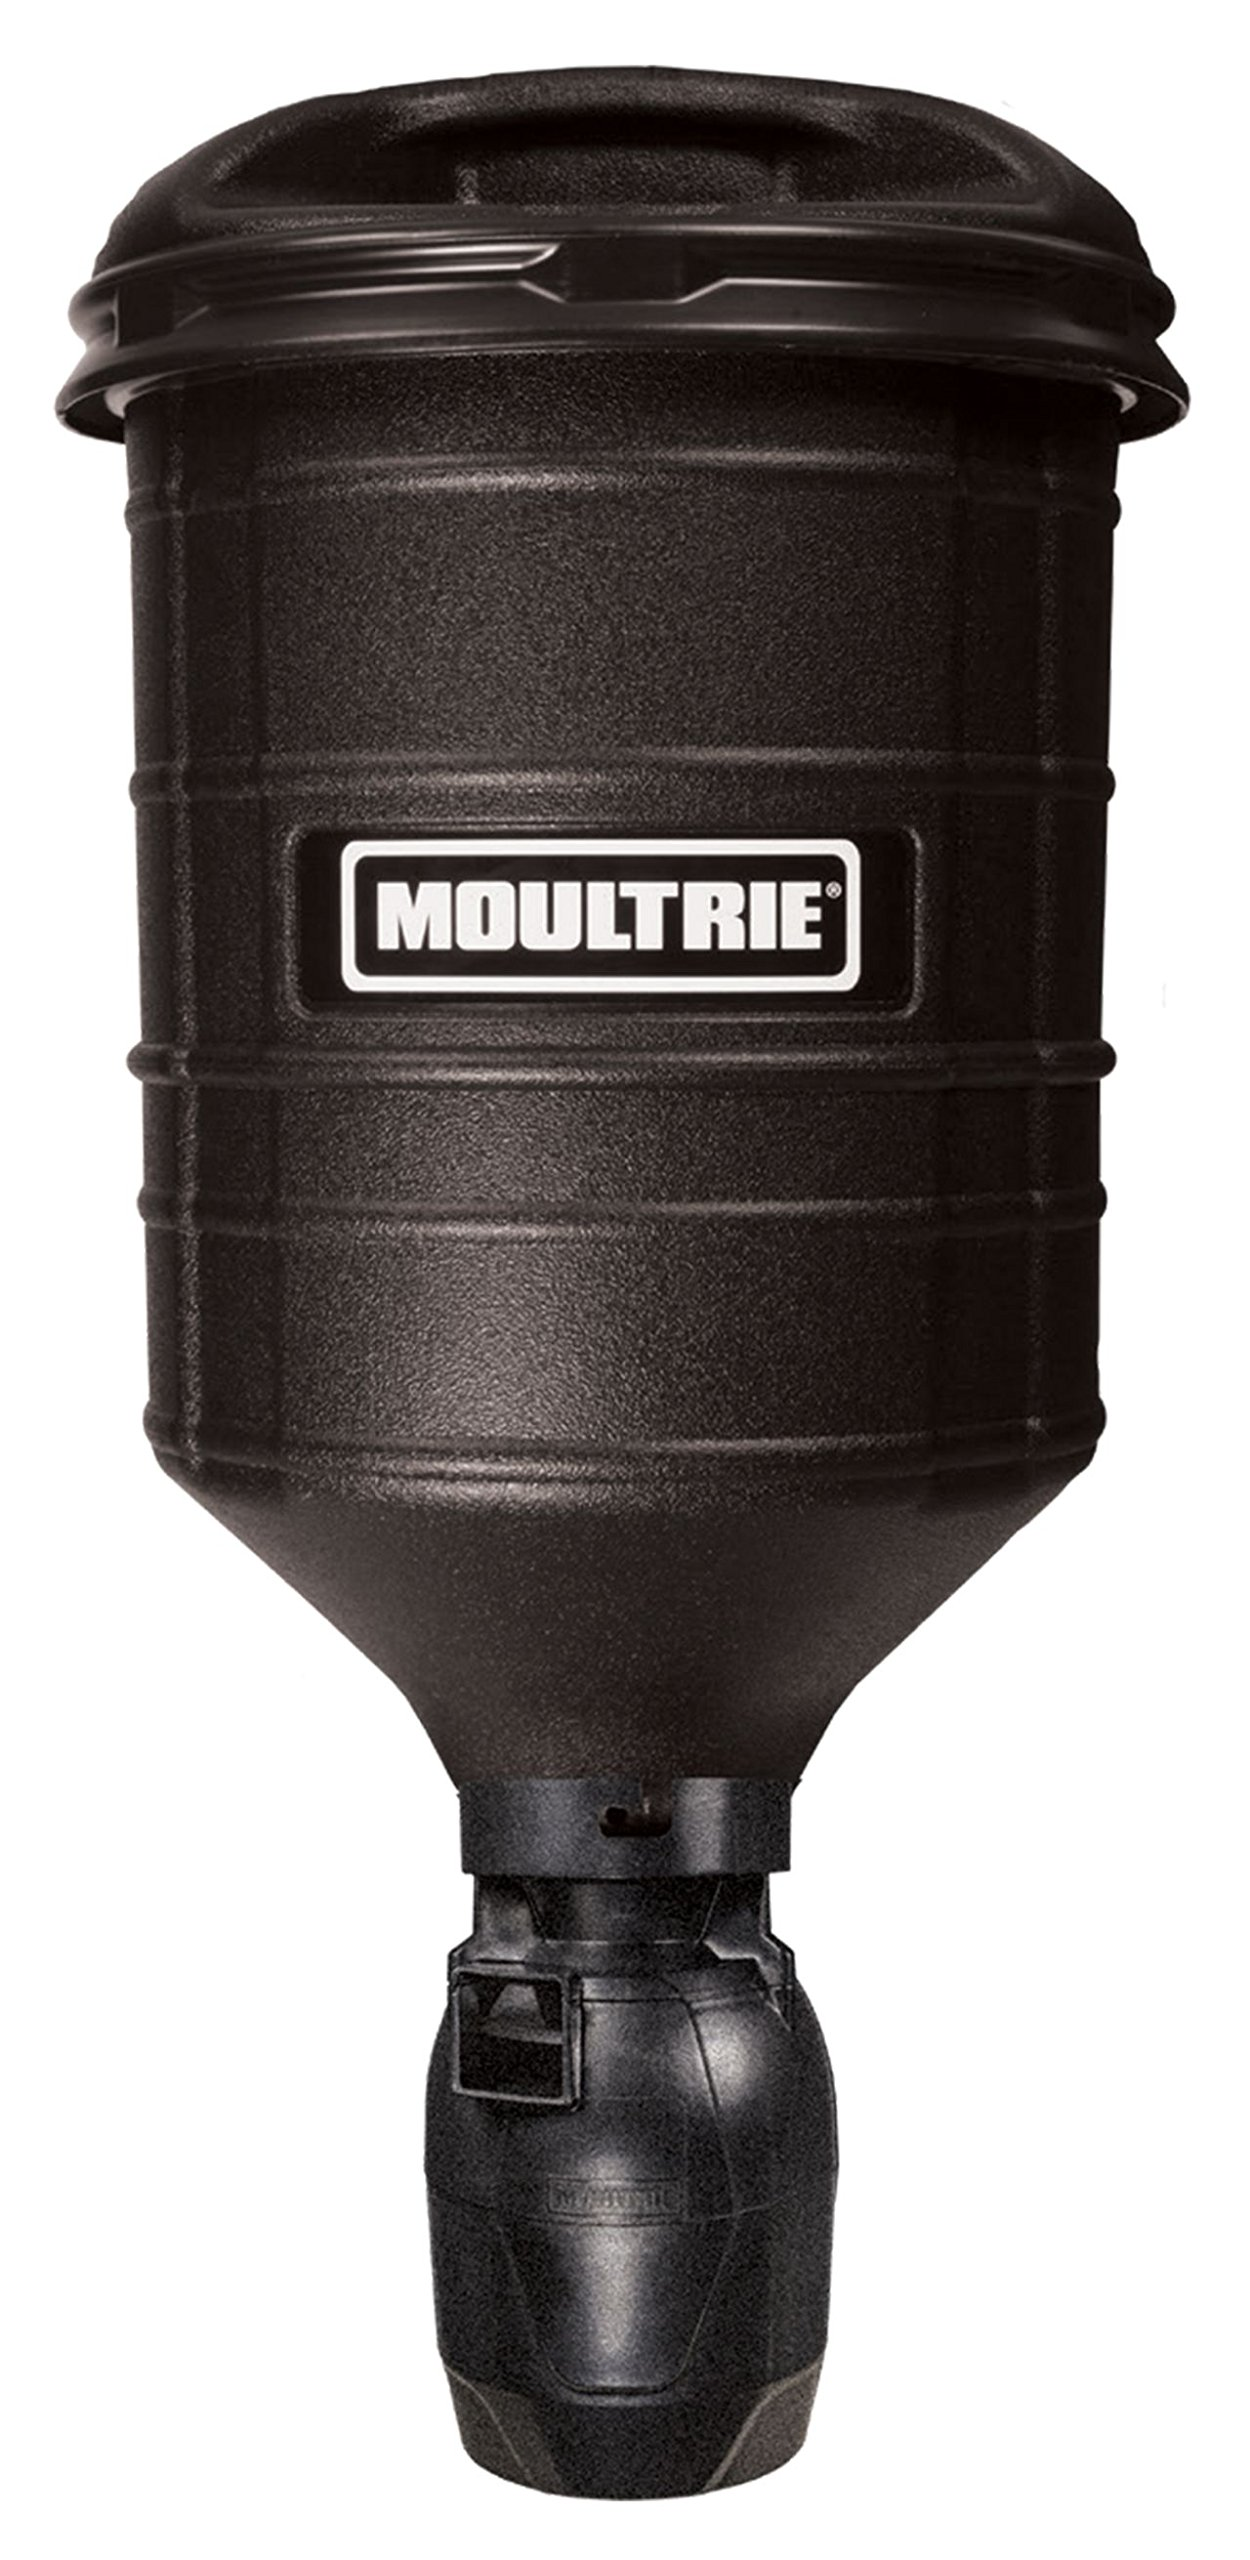 Moultrie Hanging Directional Feeder | 15-Gallon | Bracket and Ratchet Strap | 100 lb. Capacity